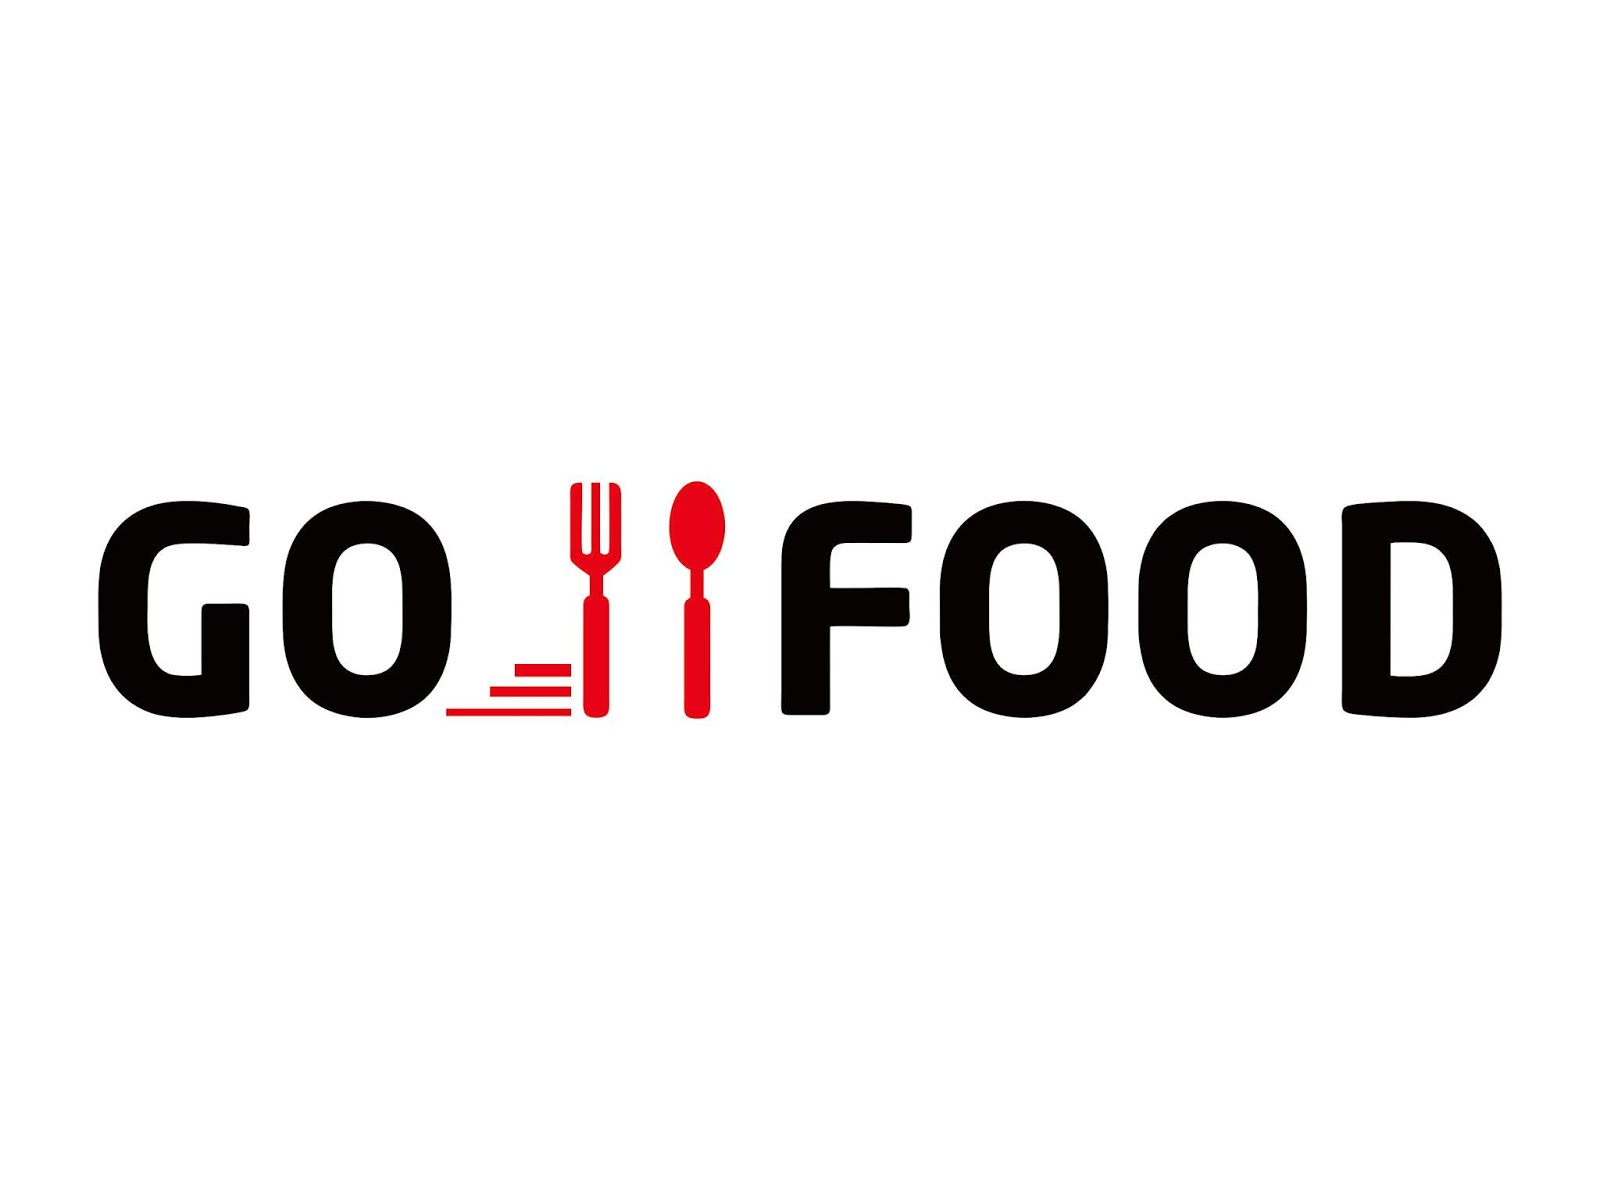 Go Food Png & Free Go Food.png Transparent Images #3745 - PNGio